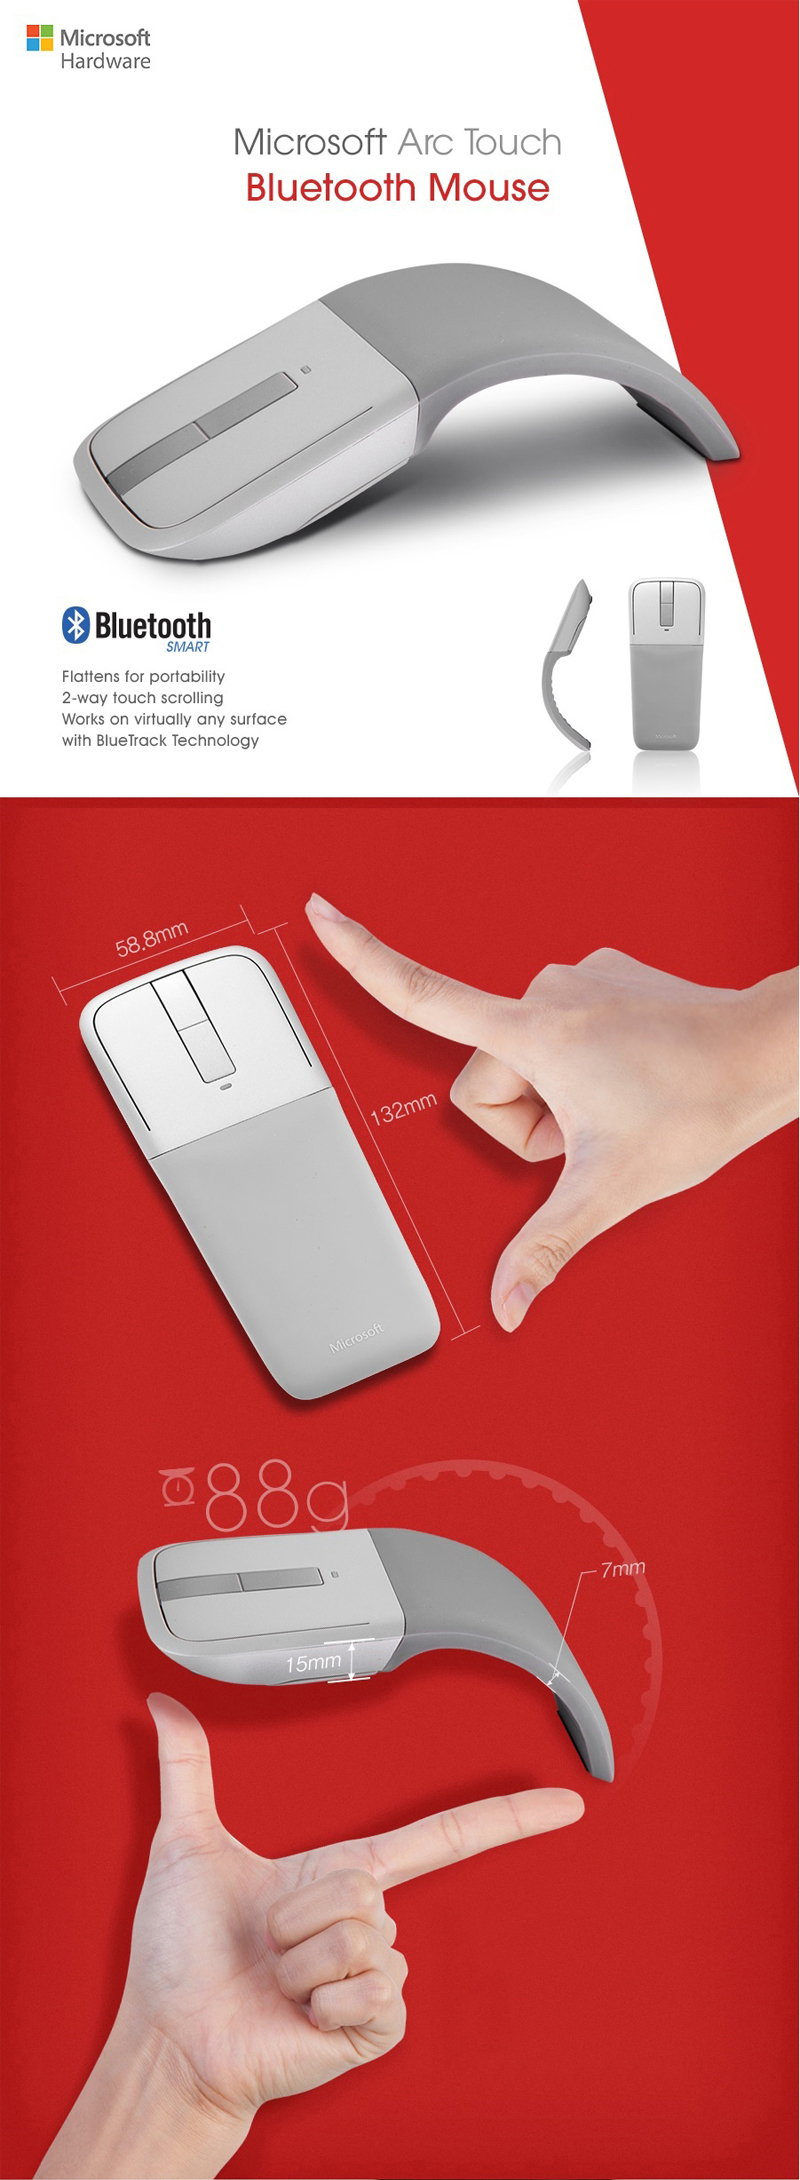 Download FreeArc Touch Bluetooth Mouse Driver Windows 10